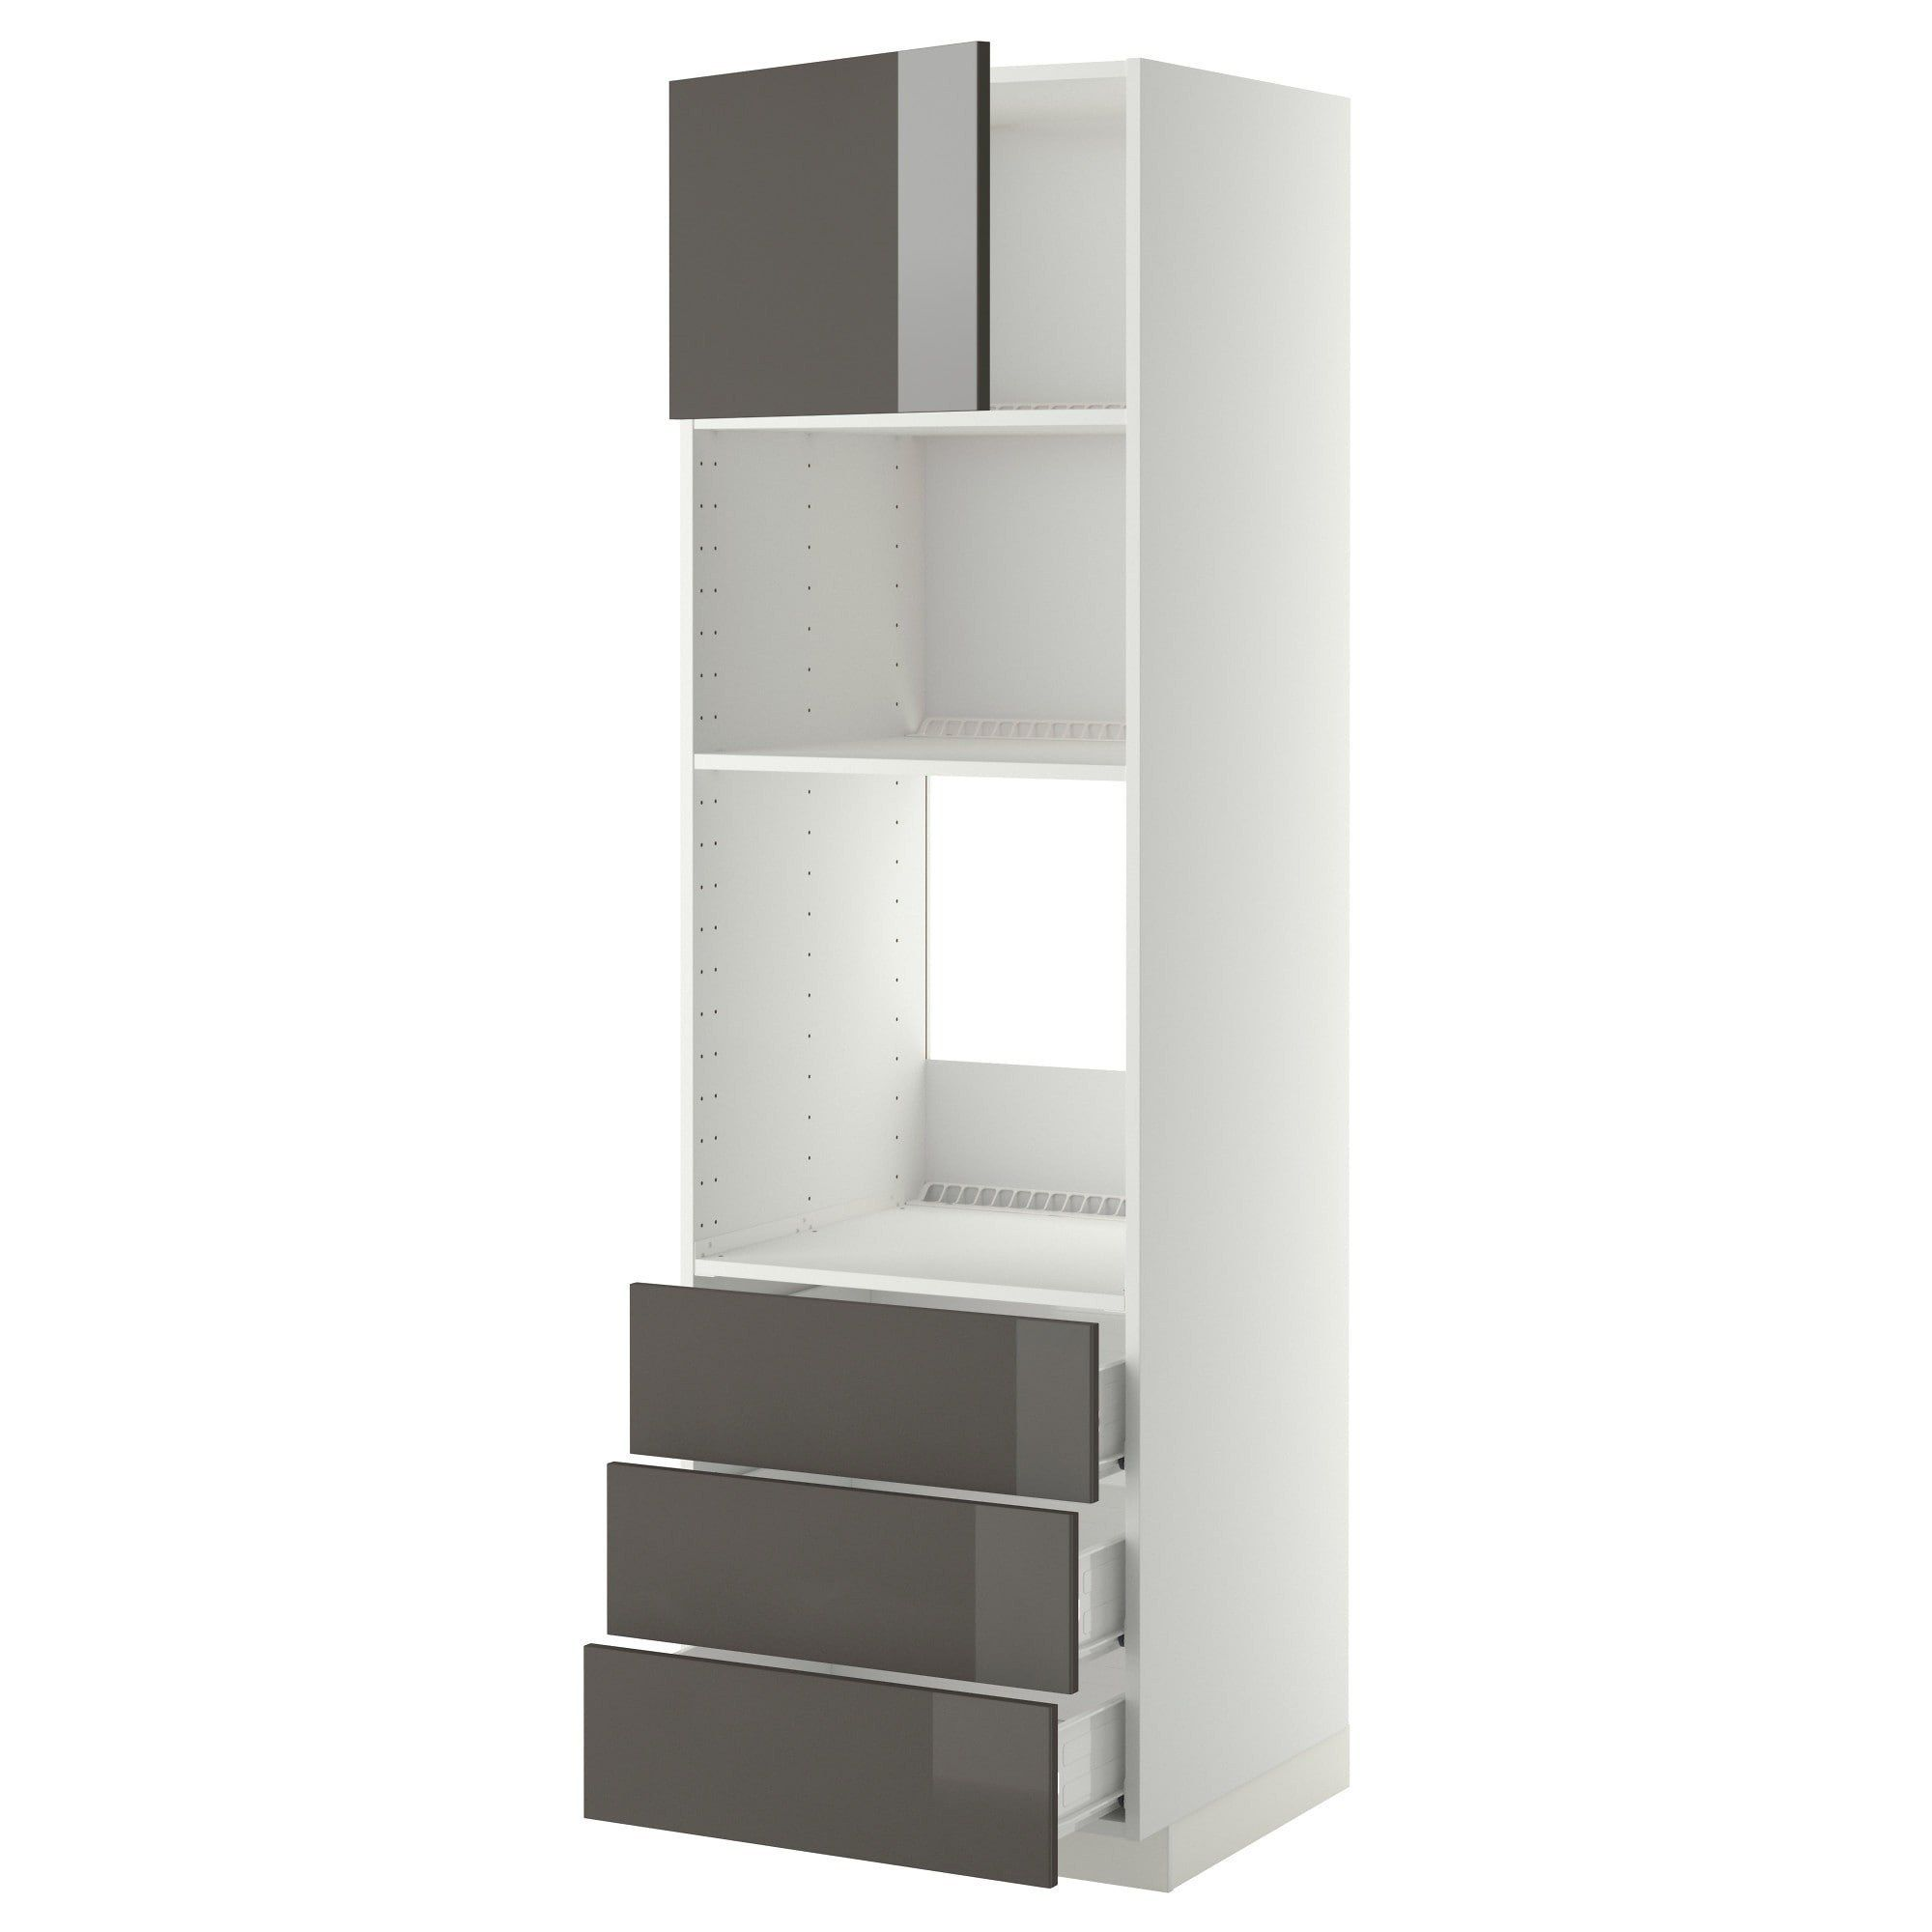 New Micro Onde Encastrable Profondeur 30 Cm Cabinet Kitchen Cabinets Tall Cabinet Storage